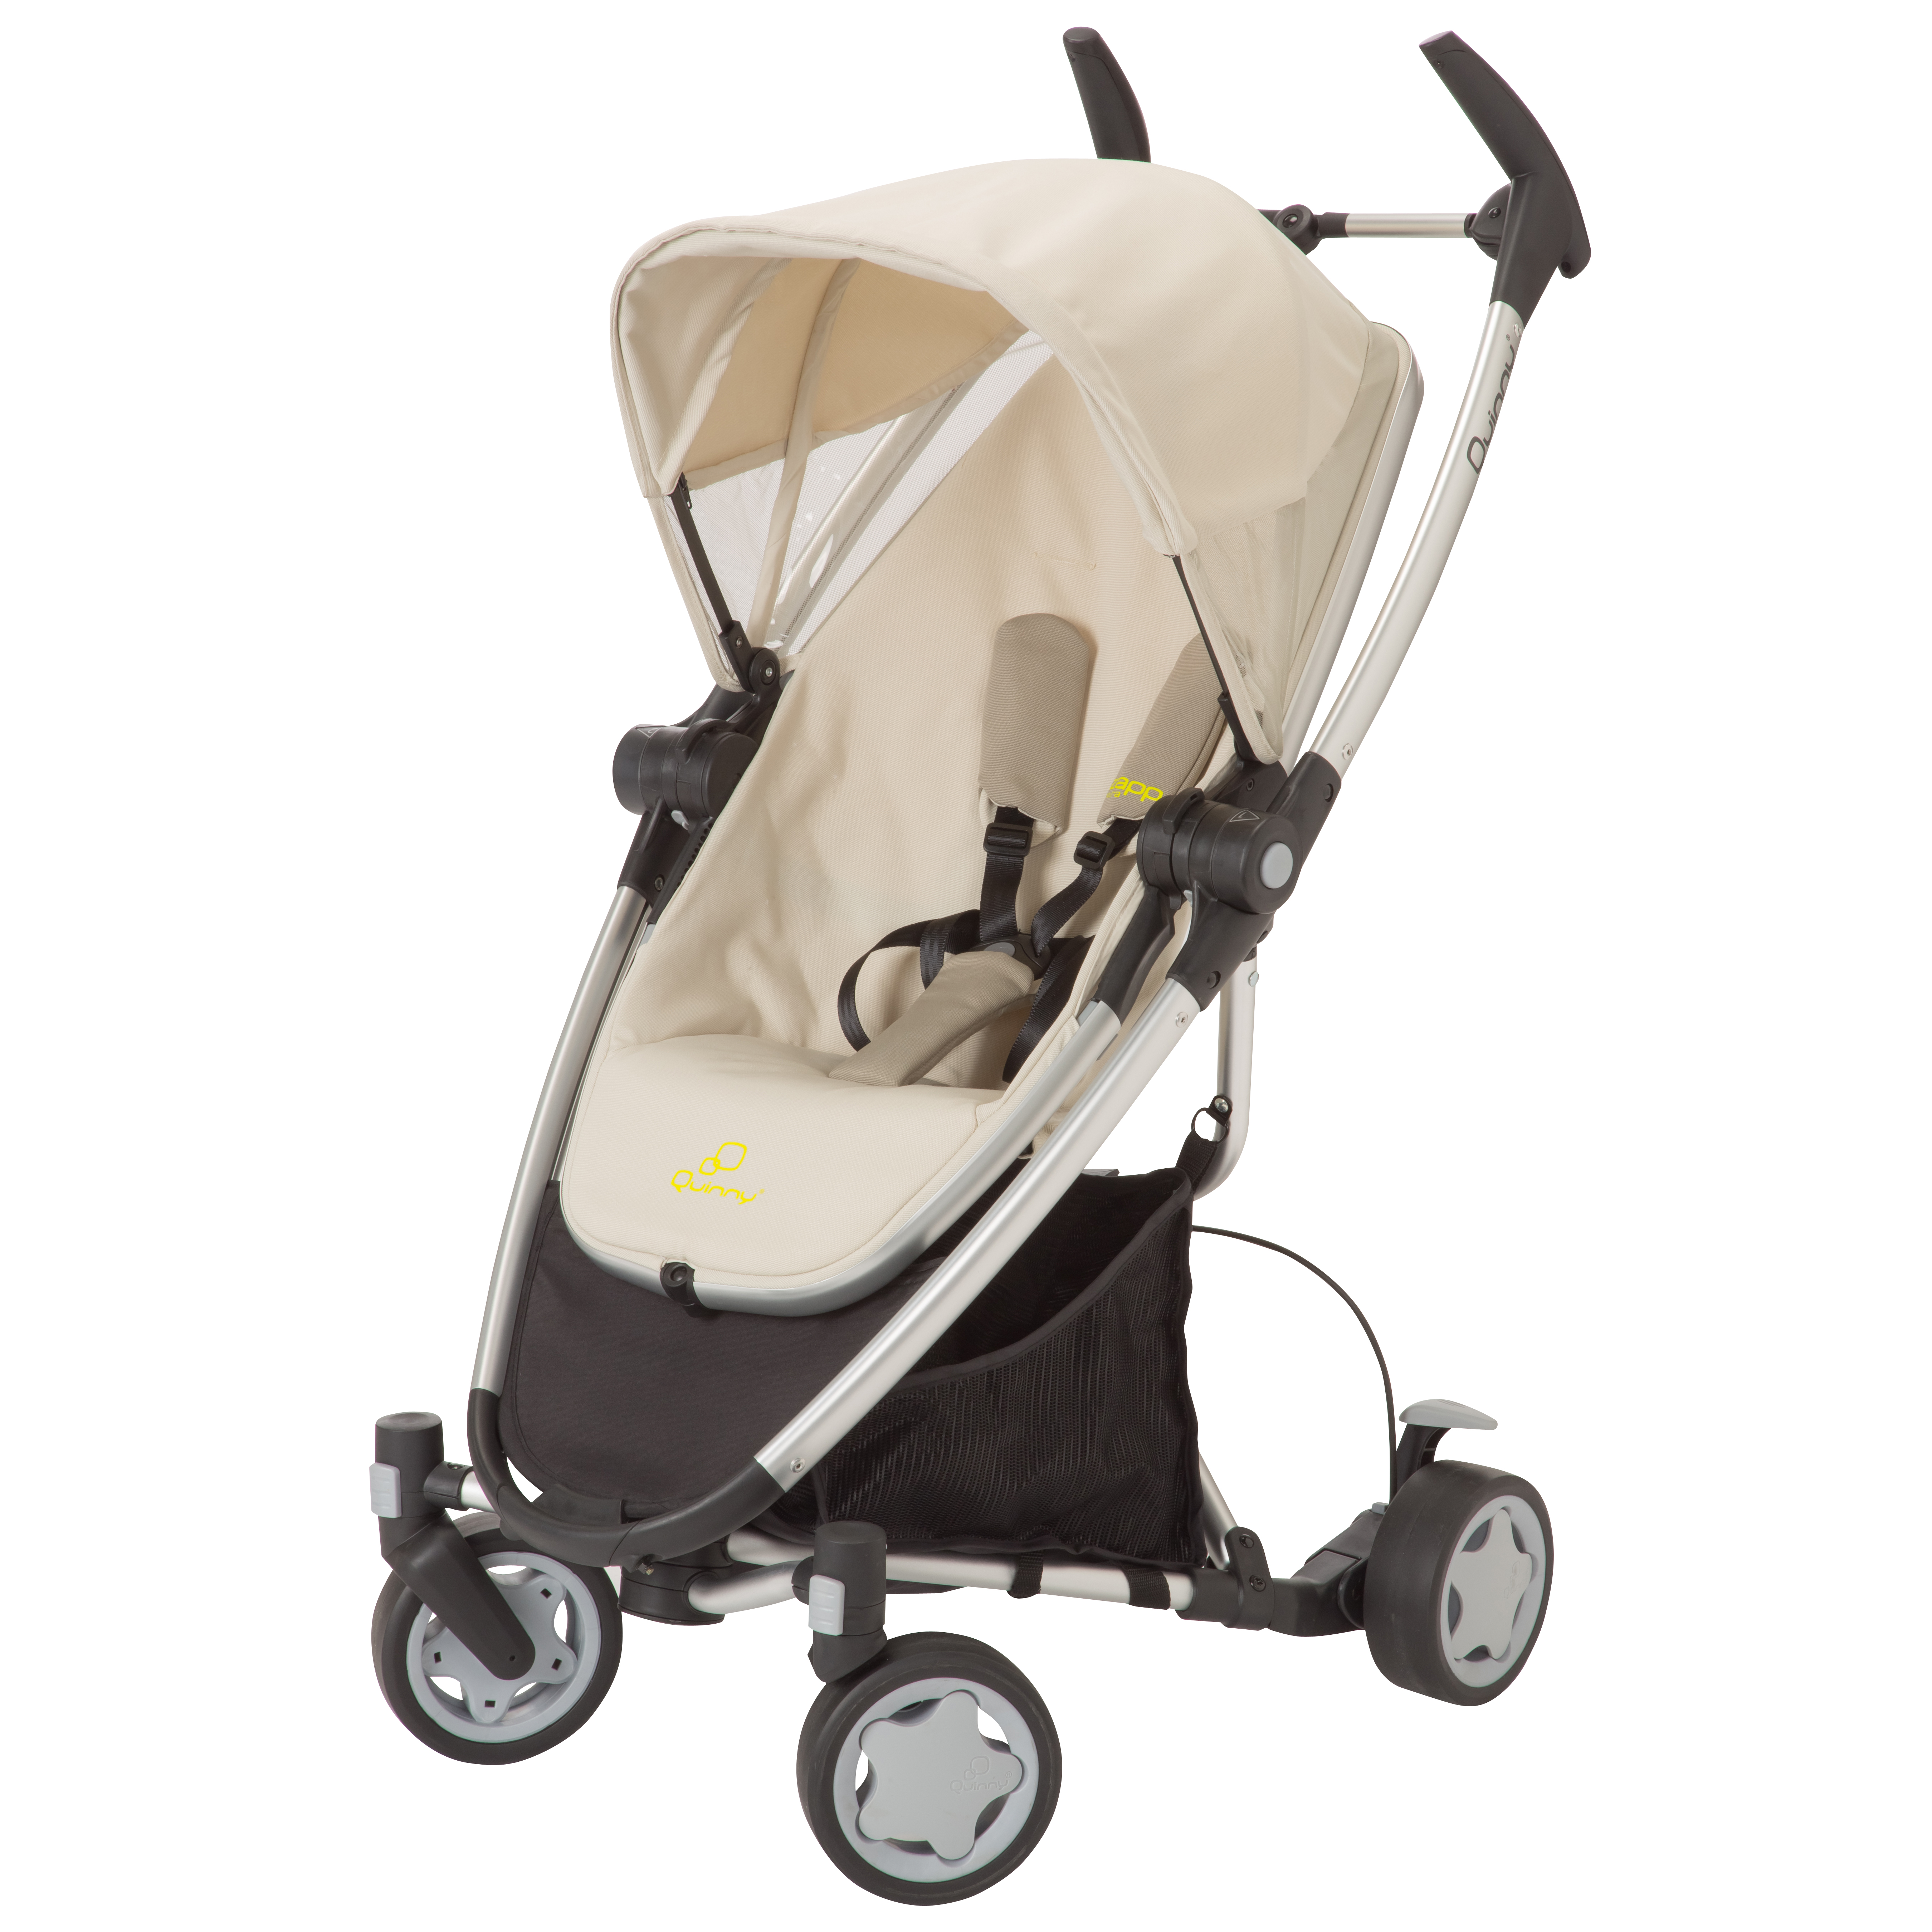 The Best Deal on the Stylish Quinny Zapp Xtra Stroller Quinny Zapp Xtra beige